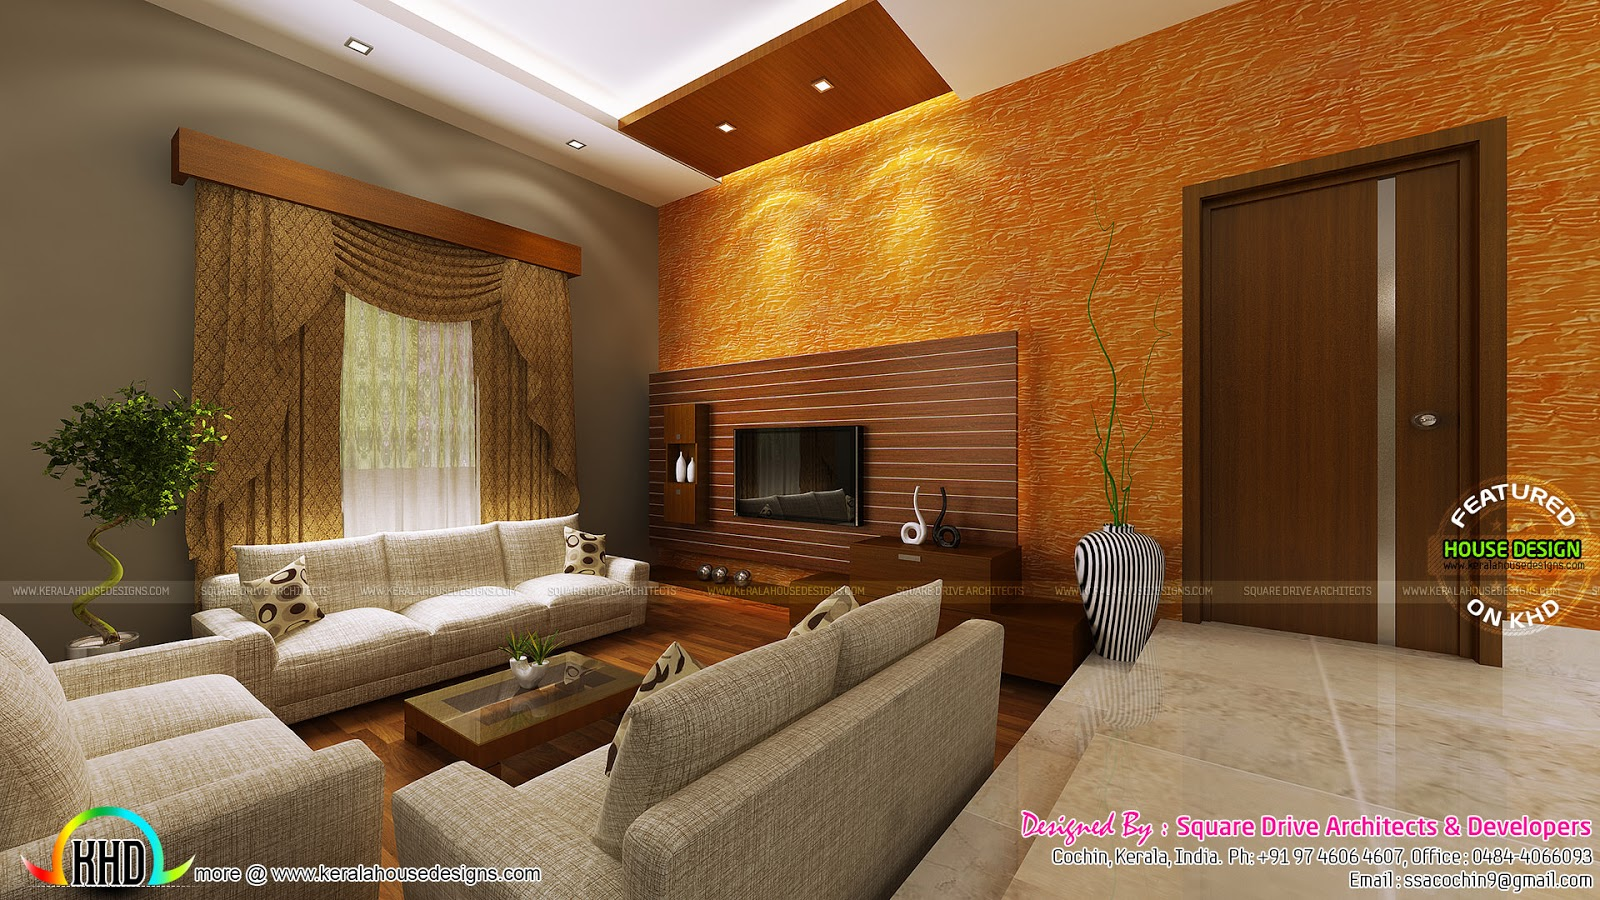 Sunken Seating And Other Home Interior Ideas: Stunning Home Interiors In Cochin